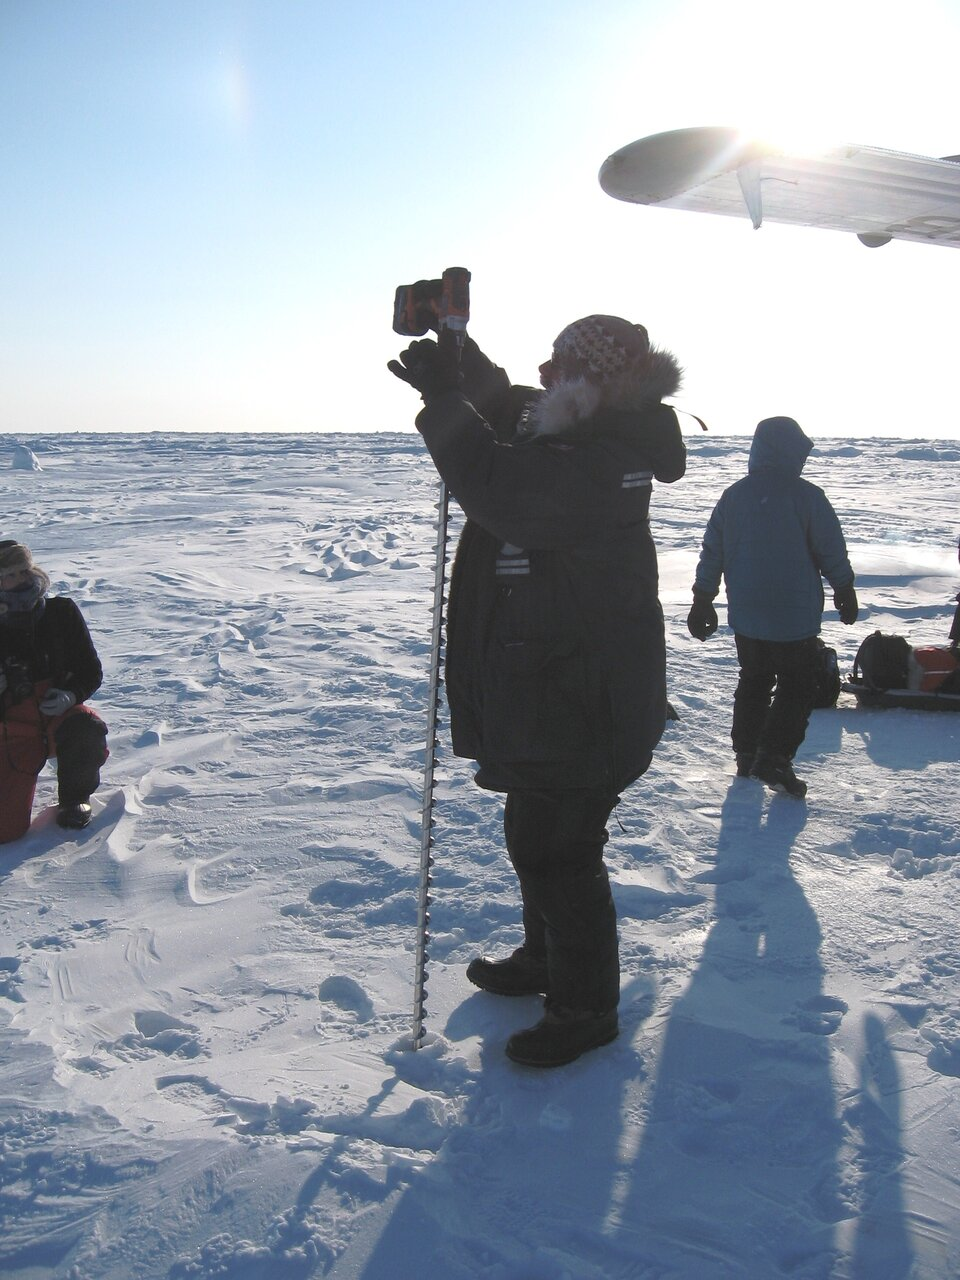 Drilling to measure ice thickness